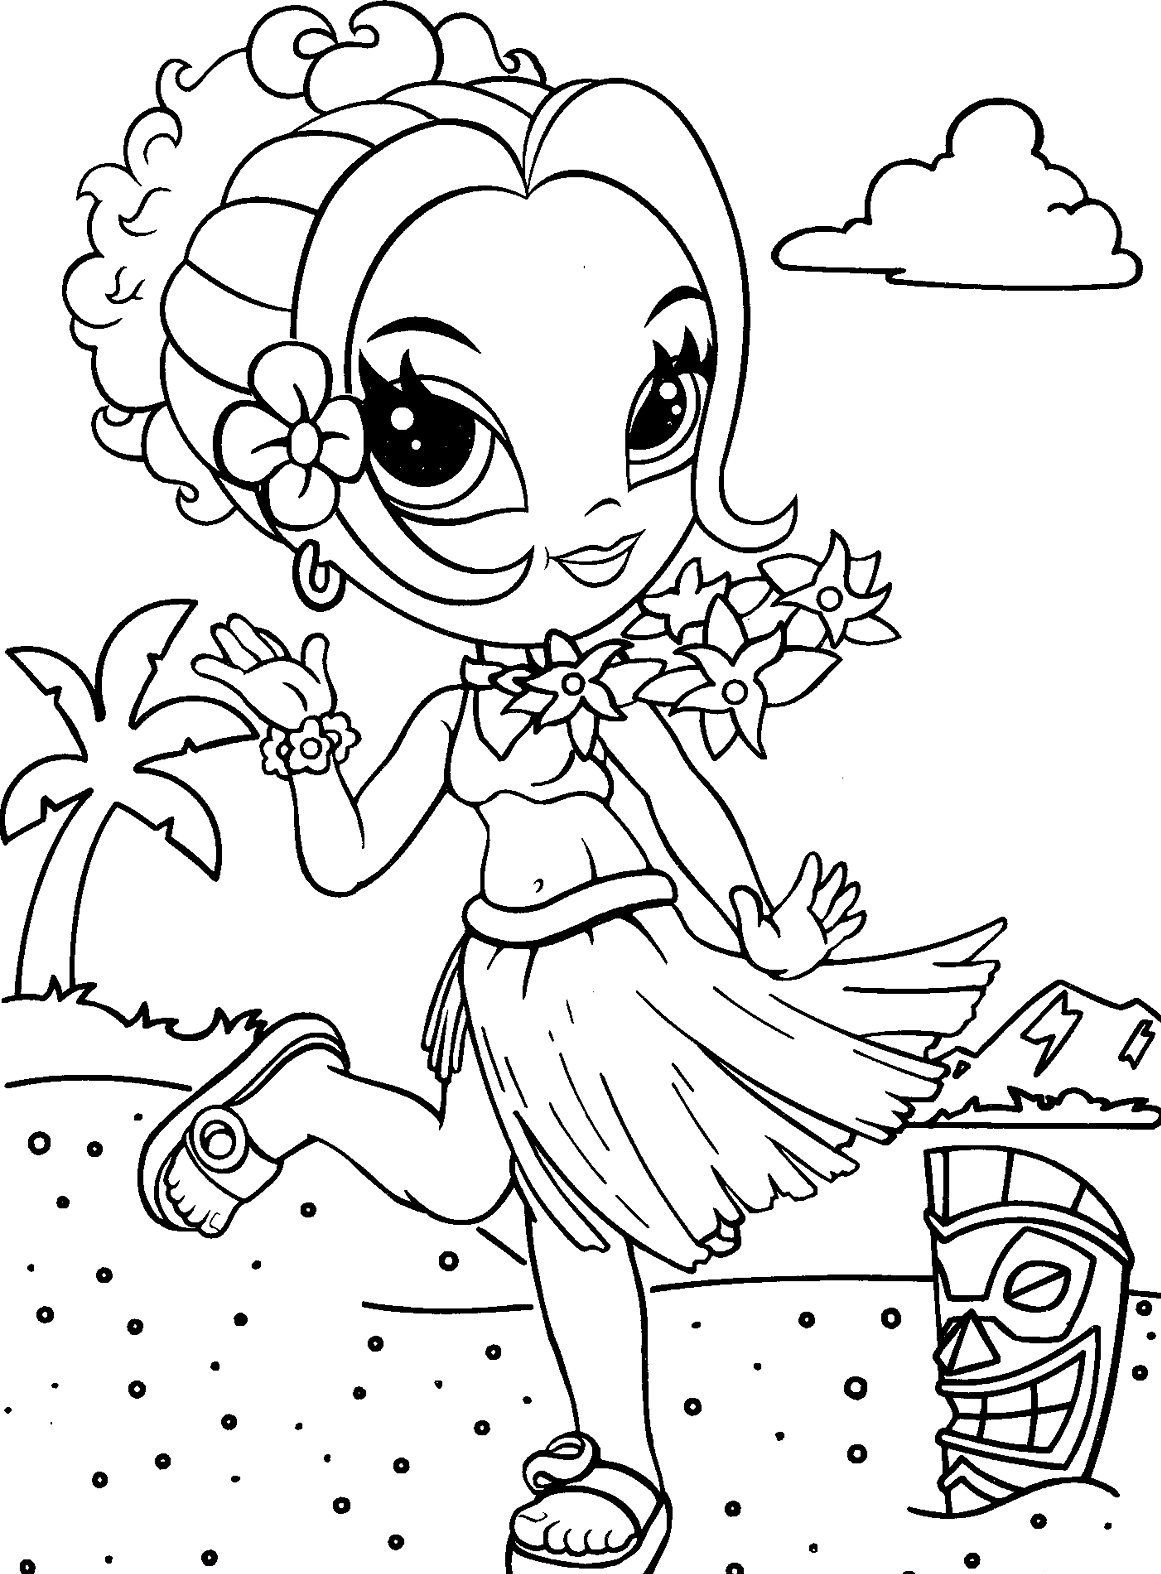 lisa frank unicorn coloring pages Collection-Lisa frank coloring pages to and print for free 20-b